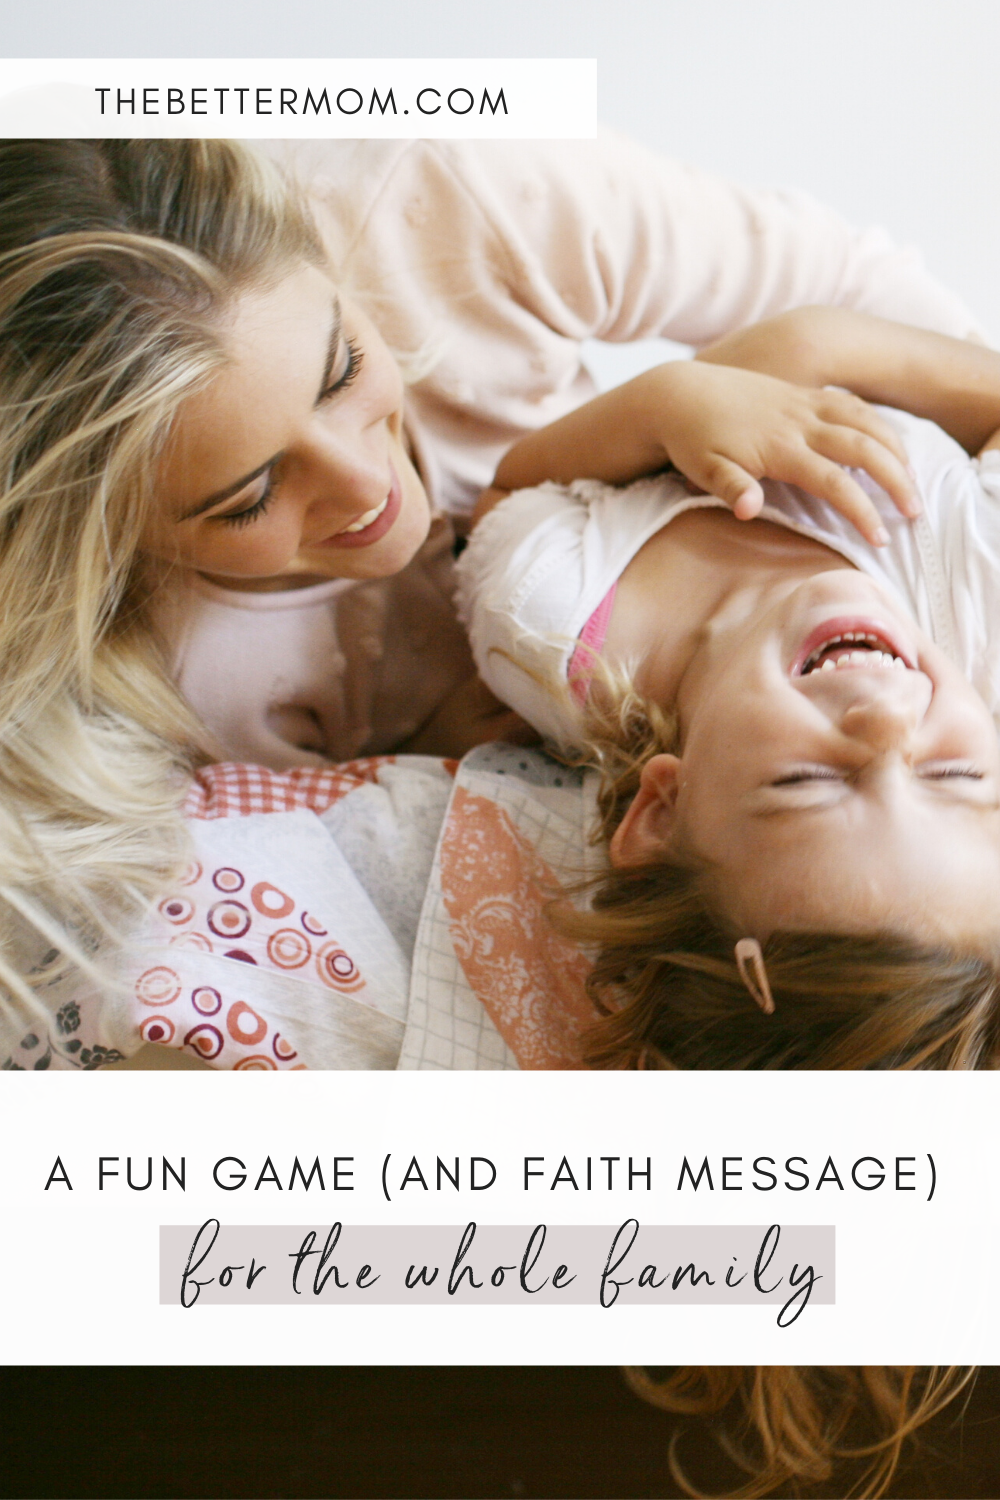 Are you looking for a fun game to play with the whole family? Spotlight is the perfect opportunity to not only have some fun, but teach your children about a deeper God truth they can carry with them for life!